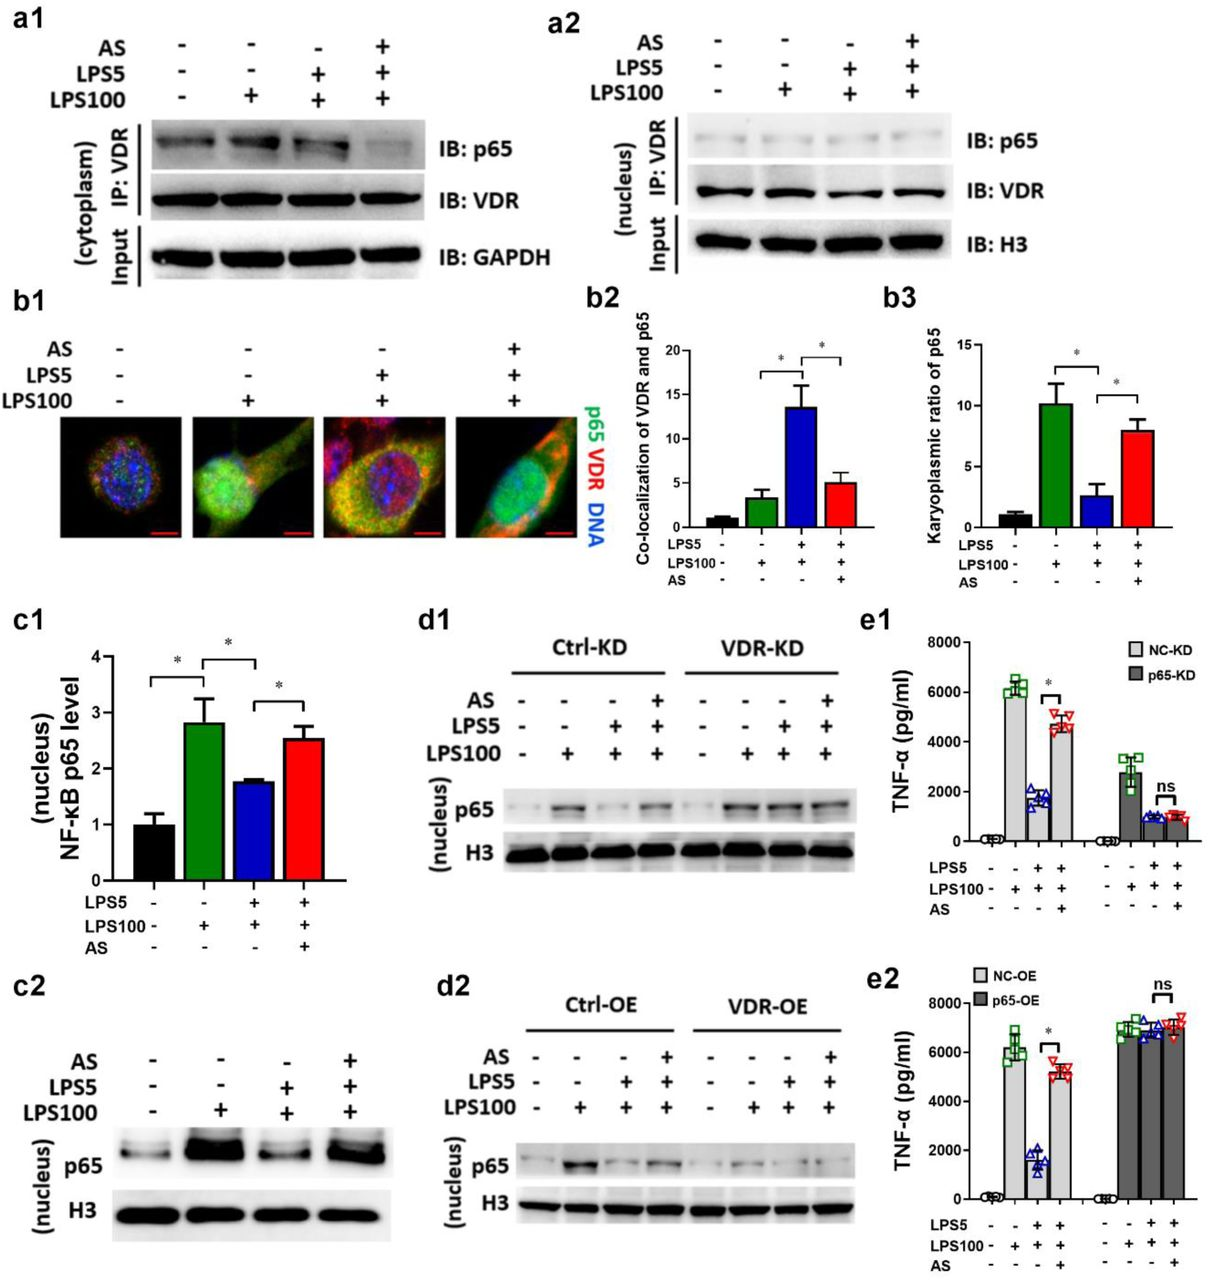 AS inhibits physical interaction between VDR and NF-κB p65 in LPS tolerance macrophages. RAW264.7 cells were treated as described in the legend of figure 2d . (a) The cytoplasm (a1) and nucleus (a2) lysate were used for an IP experiment using anti-VDR antibody, and the associated NF-κB p65 (p65) was detected by immunoblotting (IB). (b) Immunostaining to observe the co-localization of p65 and VDR. P65 was probed using Alexa Fluor 488 (green). VDR was probed using Alexa Fluor 555 (red). Representative images are shown (Bar = 5μm) (b1). The co-localization of VDR and P65 (b2) and karyoplasmic ratio of P65 (b3) was quantified from 100 cells (normalized to medium). (c) P65 level in nucleus lysate were detected using ELISA and IB. (d) Change of P65 level in VDR-KD (d1) or VDR-OE (d2) LPS tolerance RAW264.7 cells treated with AS. (e) Change of TNF-α level in P65-KD (e1) or P65-OE (e2) LPS tolerance RAW264.7 cells treated with AS (n = 5). (* P